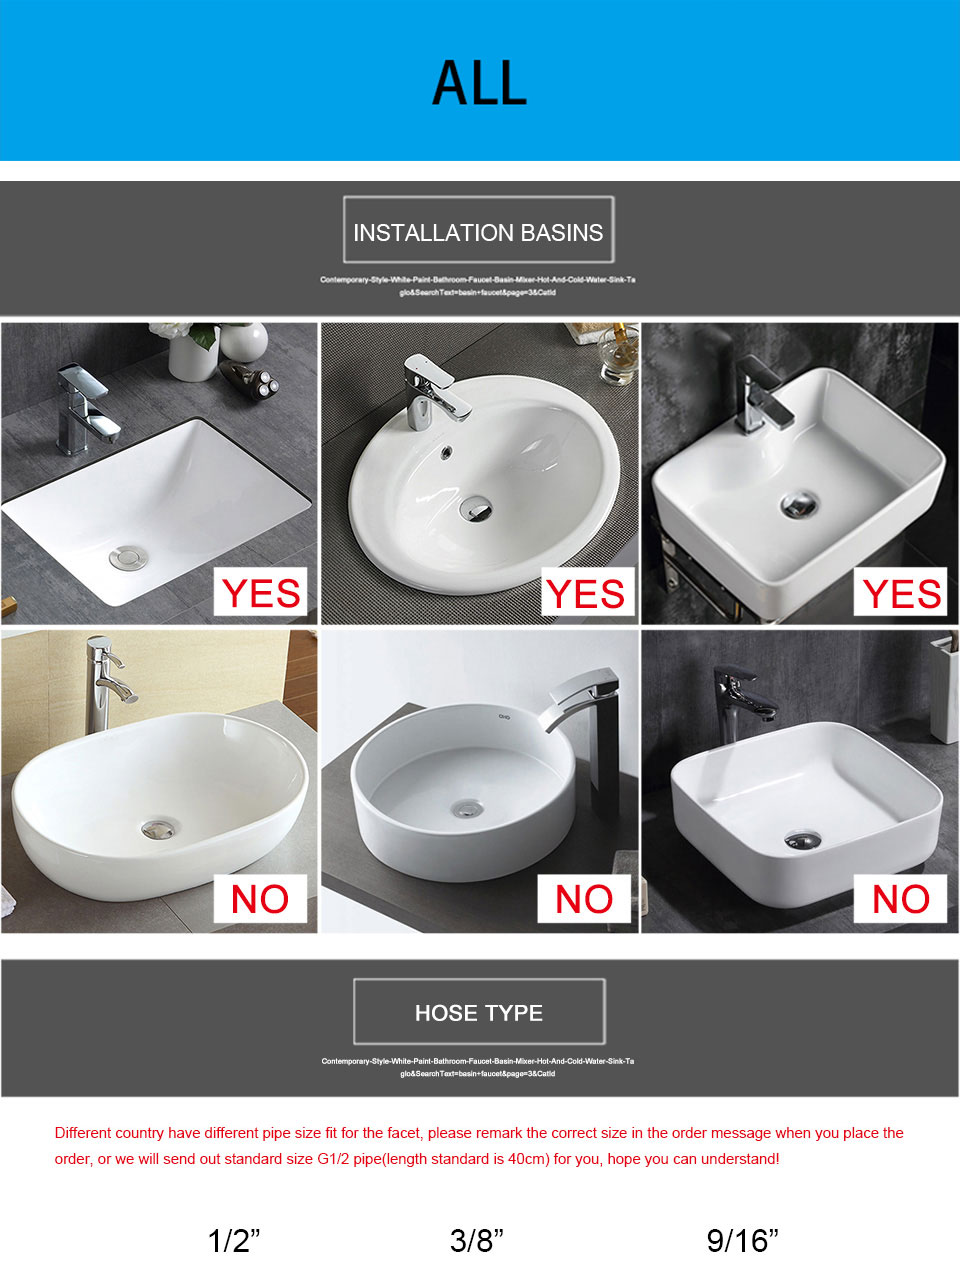 HTB11kf1imtYBeNjSspaq6yOOFXay ROVATE LED Basin Faucet Brass Waterfall Temperature Colors Change Bathroom Mixer Tap Deck Mounted Wash Sink Glass Taps